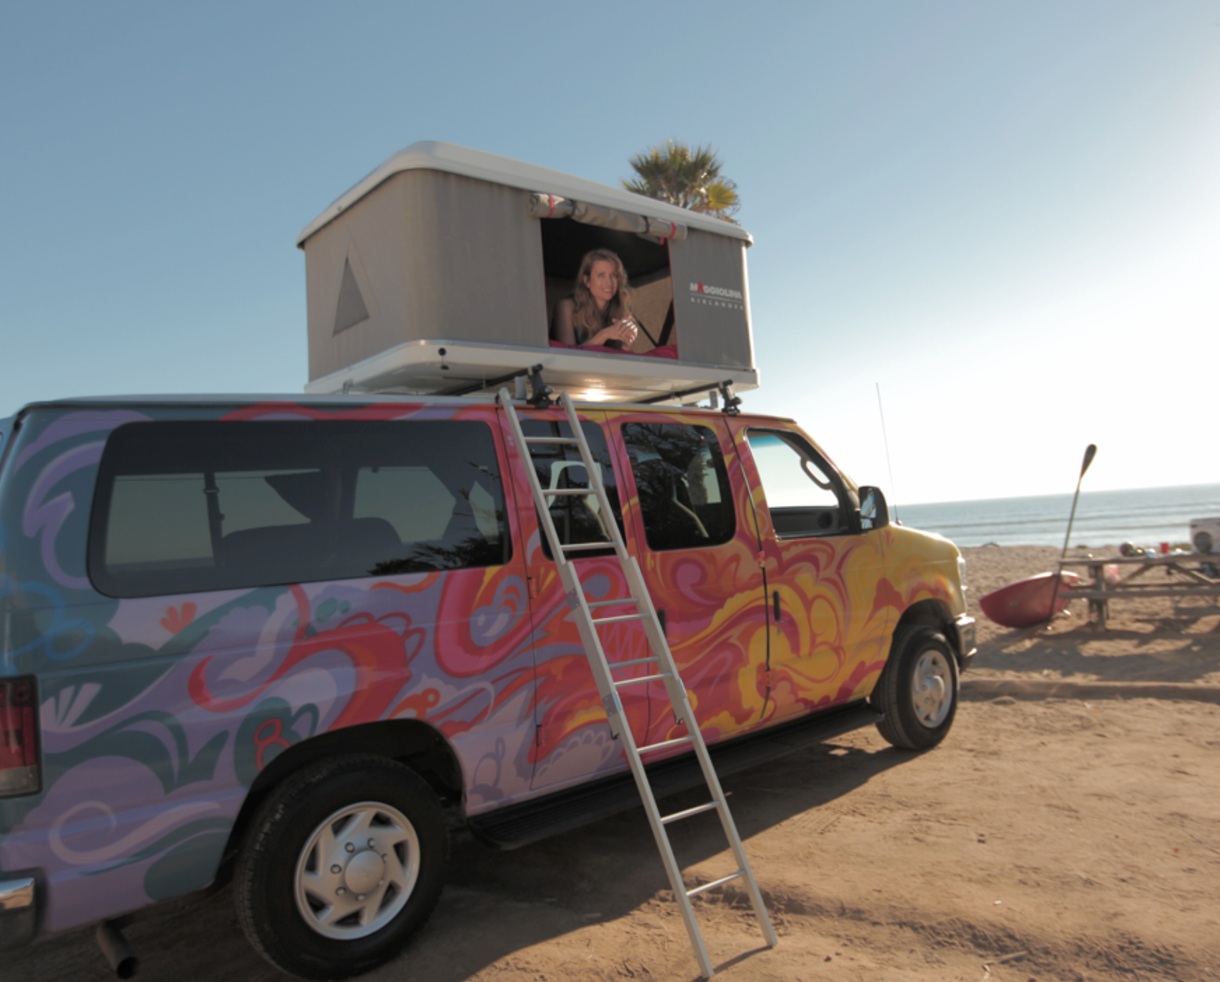 Deal: $499 for 7 night Campervan Rental - LA, San Francisco and Las